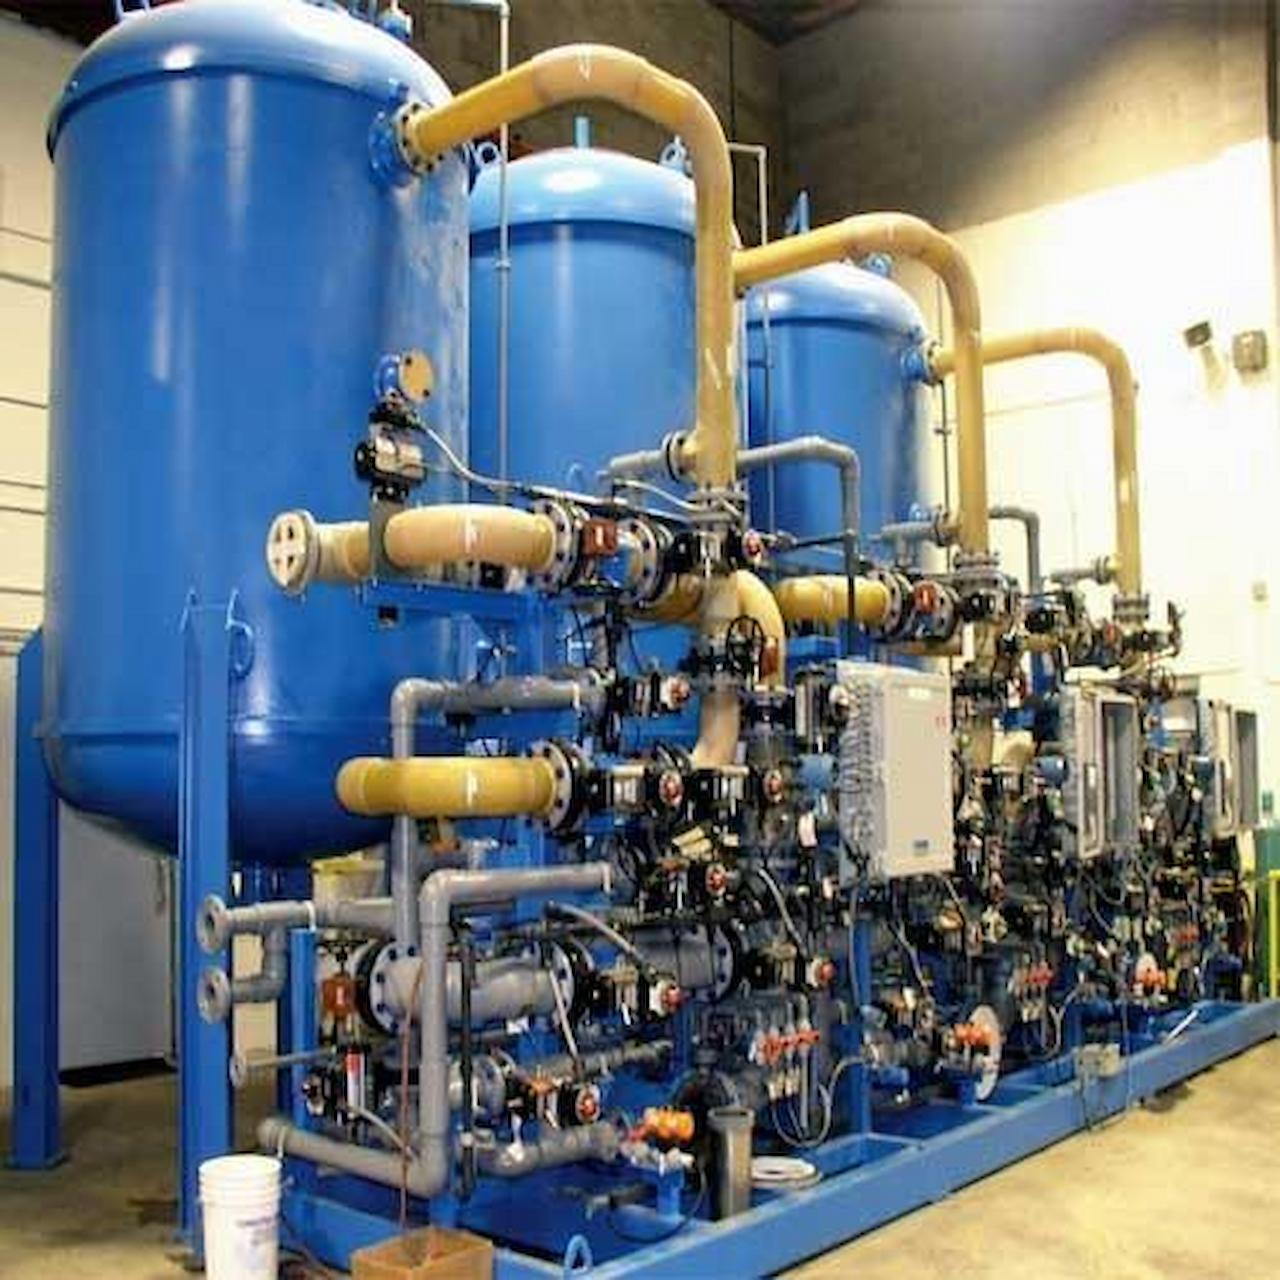 Do You Need Water Treatment Services In London?